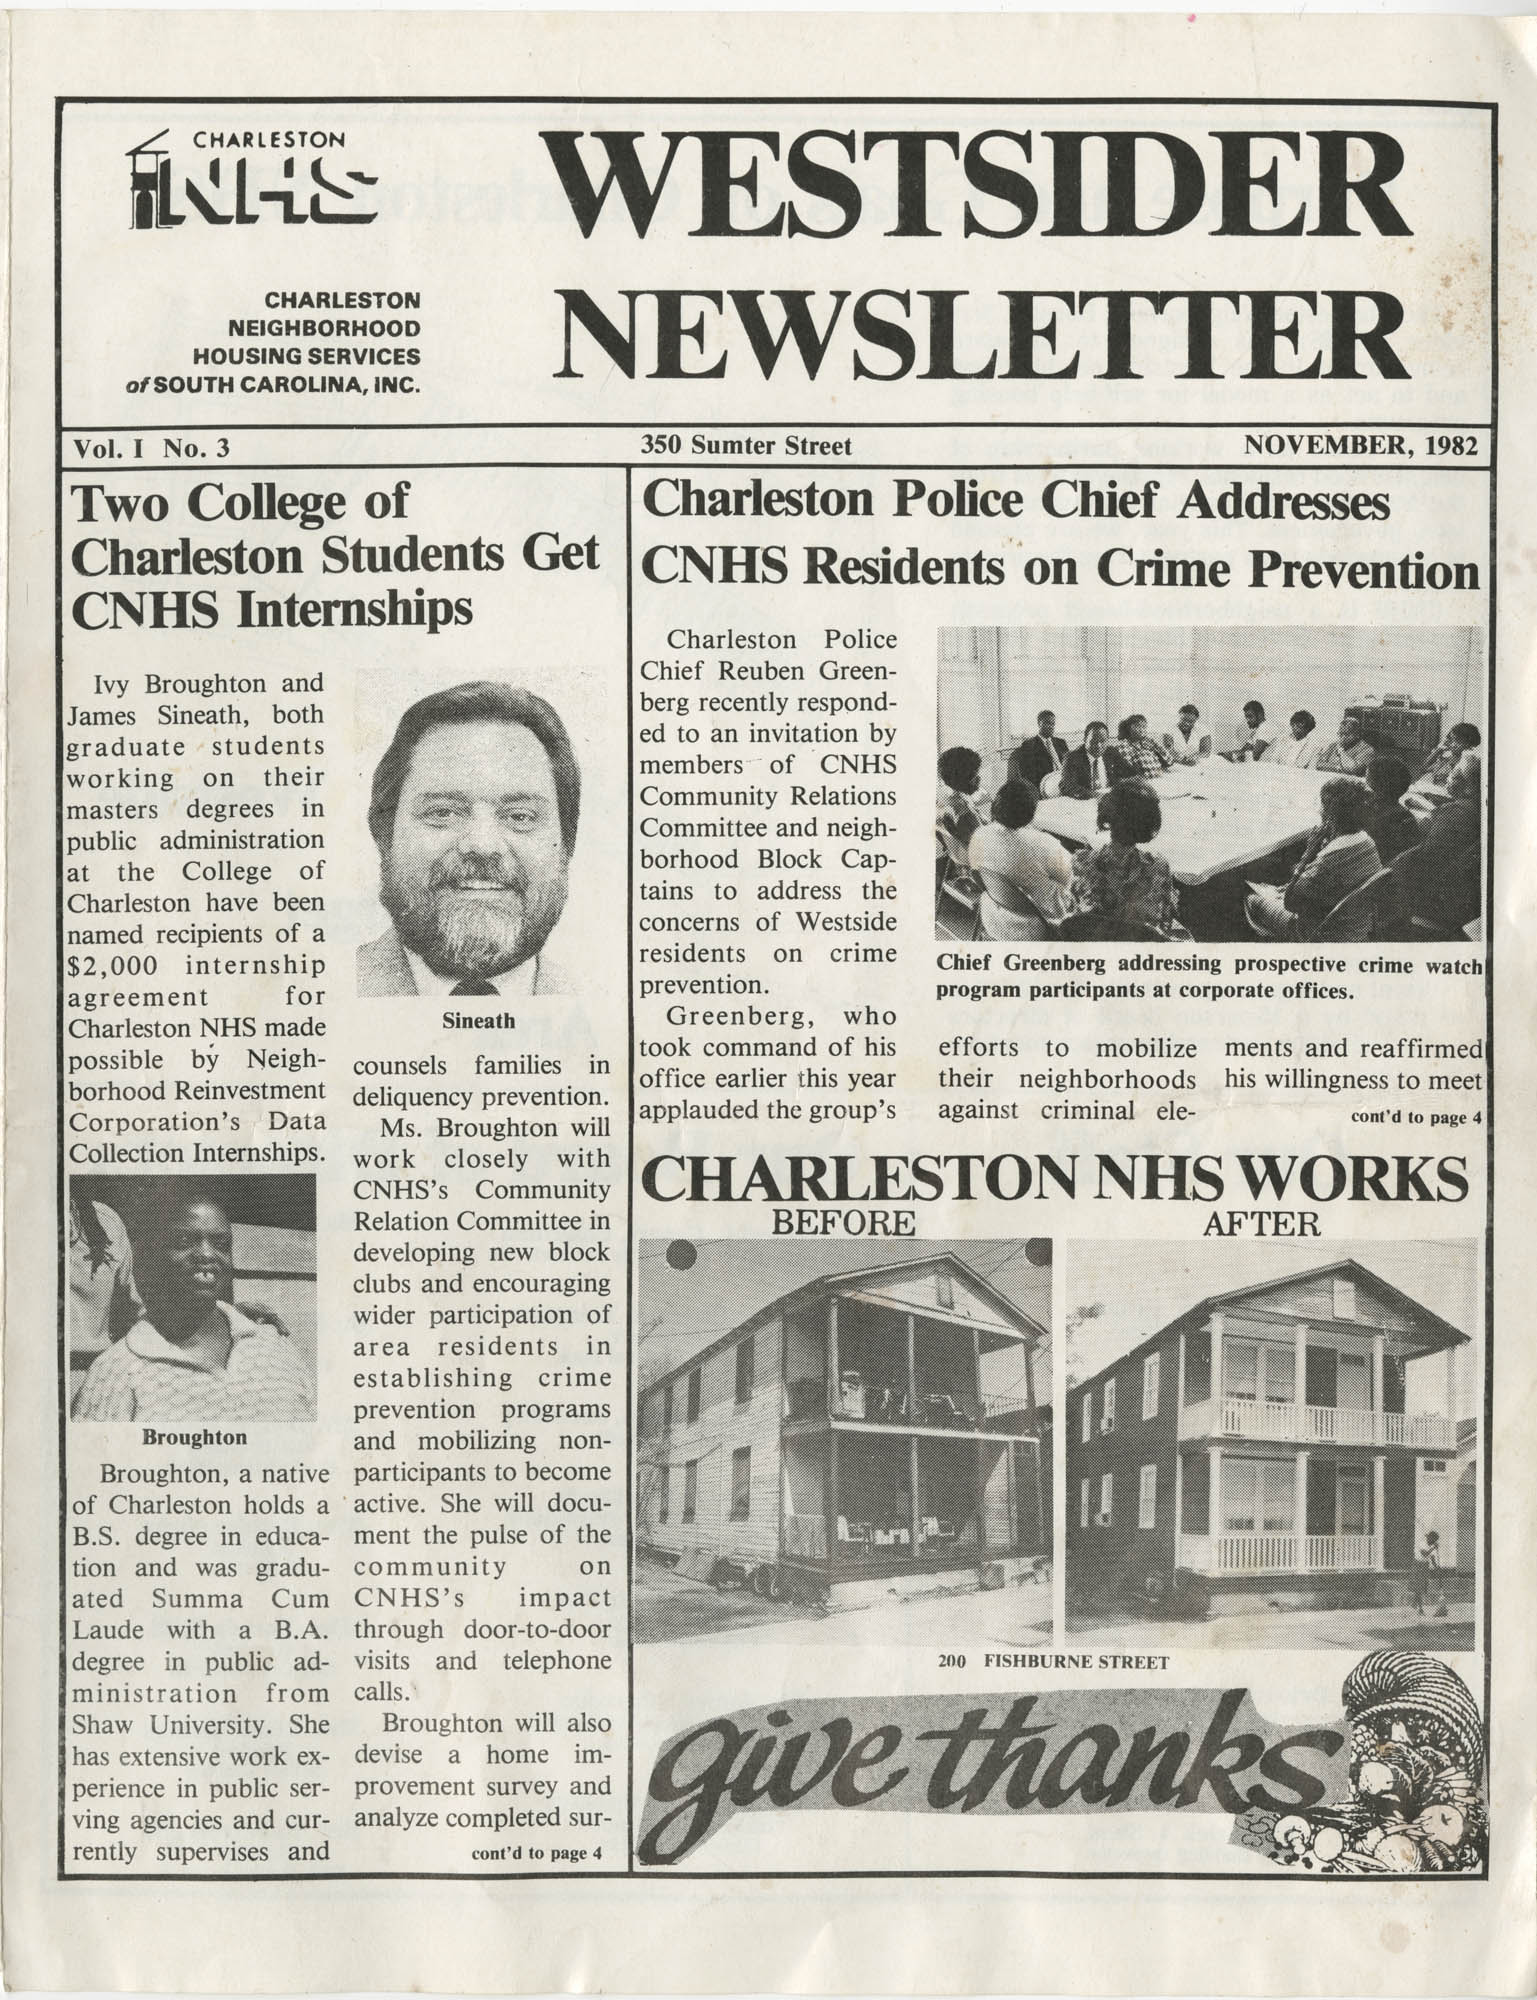 Westsider Newsletter, Vol. 1, No. 3, November 1982